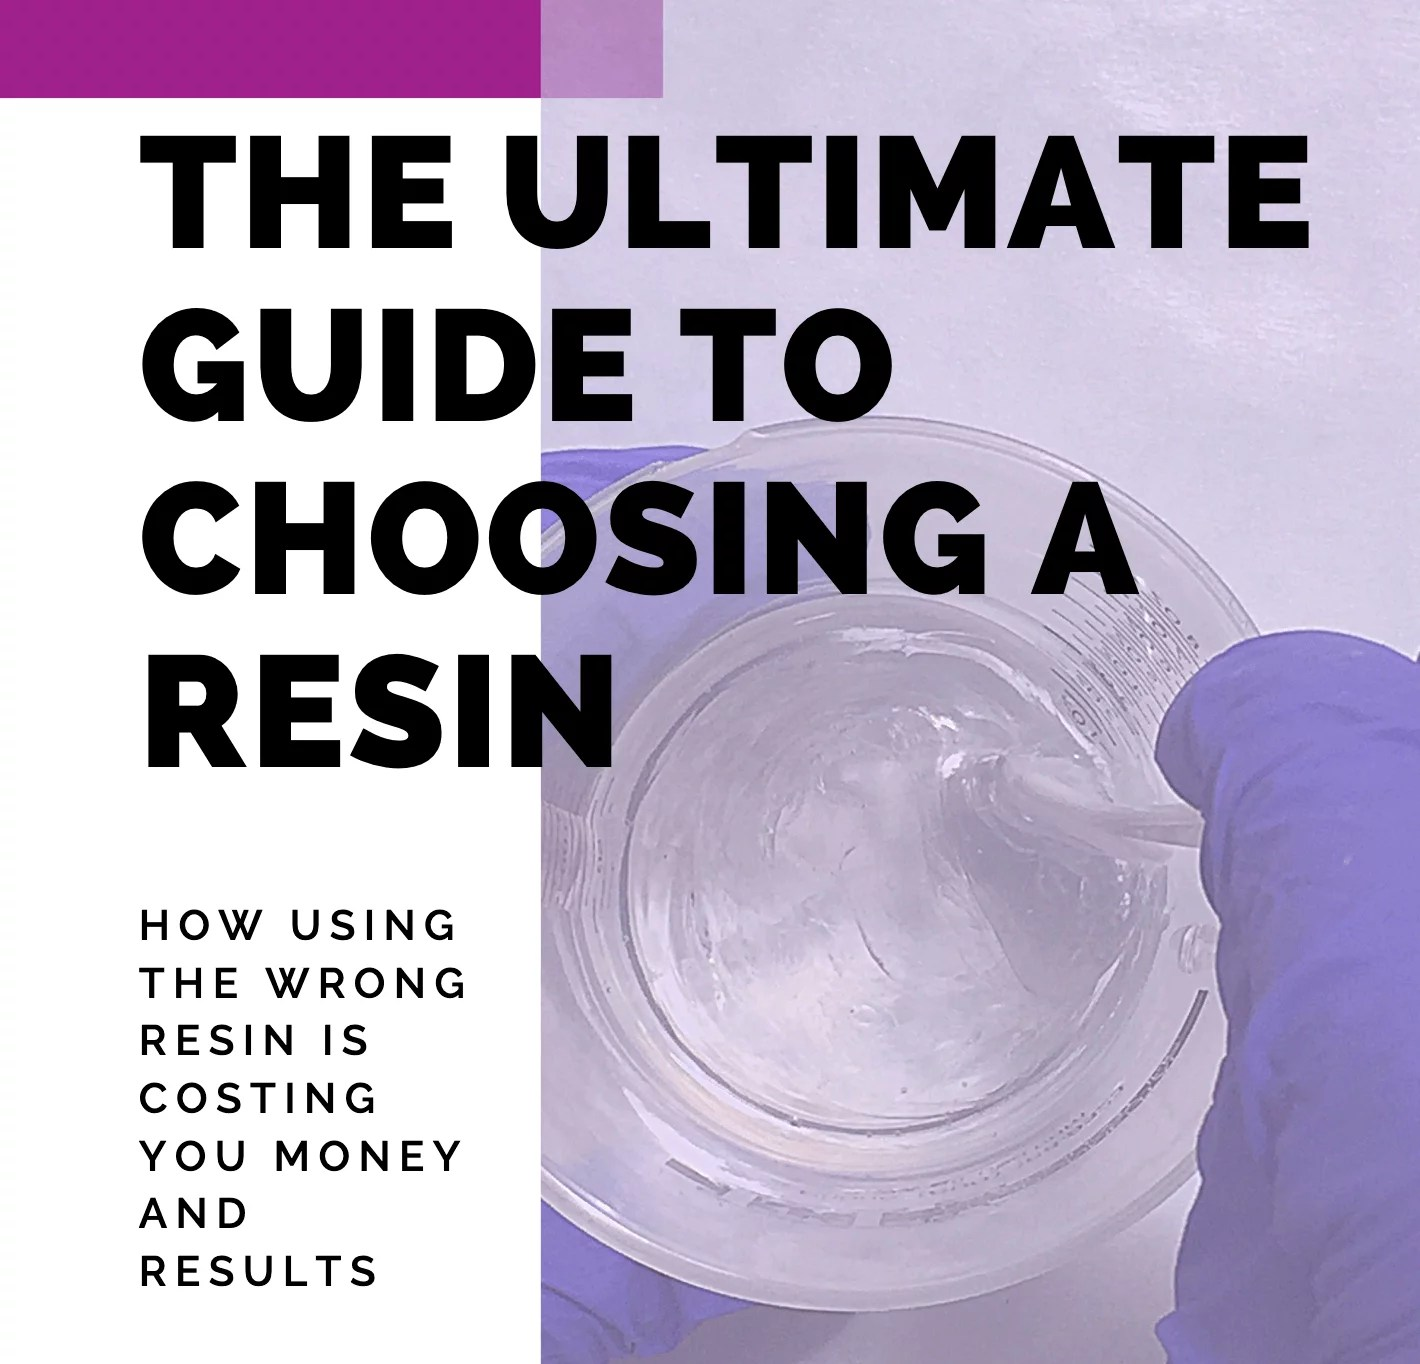 The Ultimate Guide to Choosing a Resin